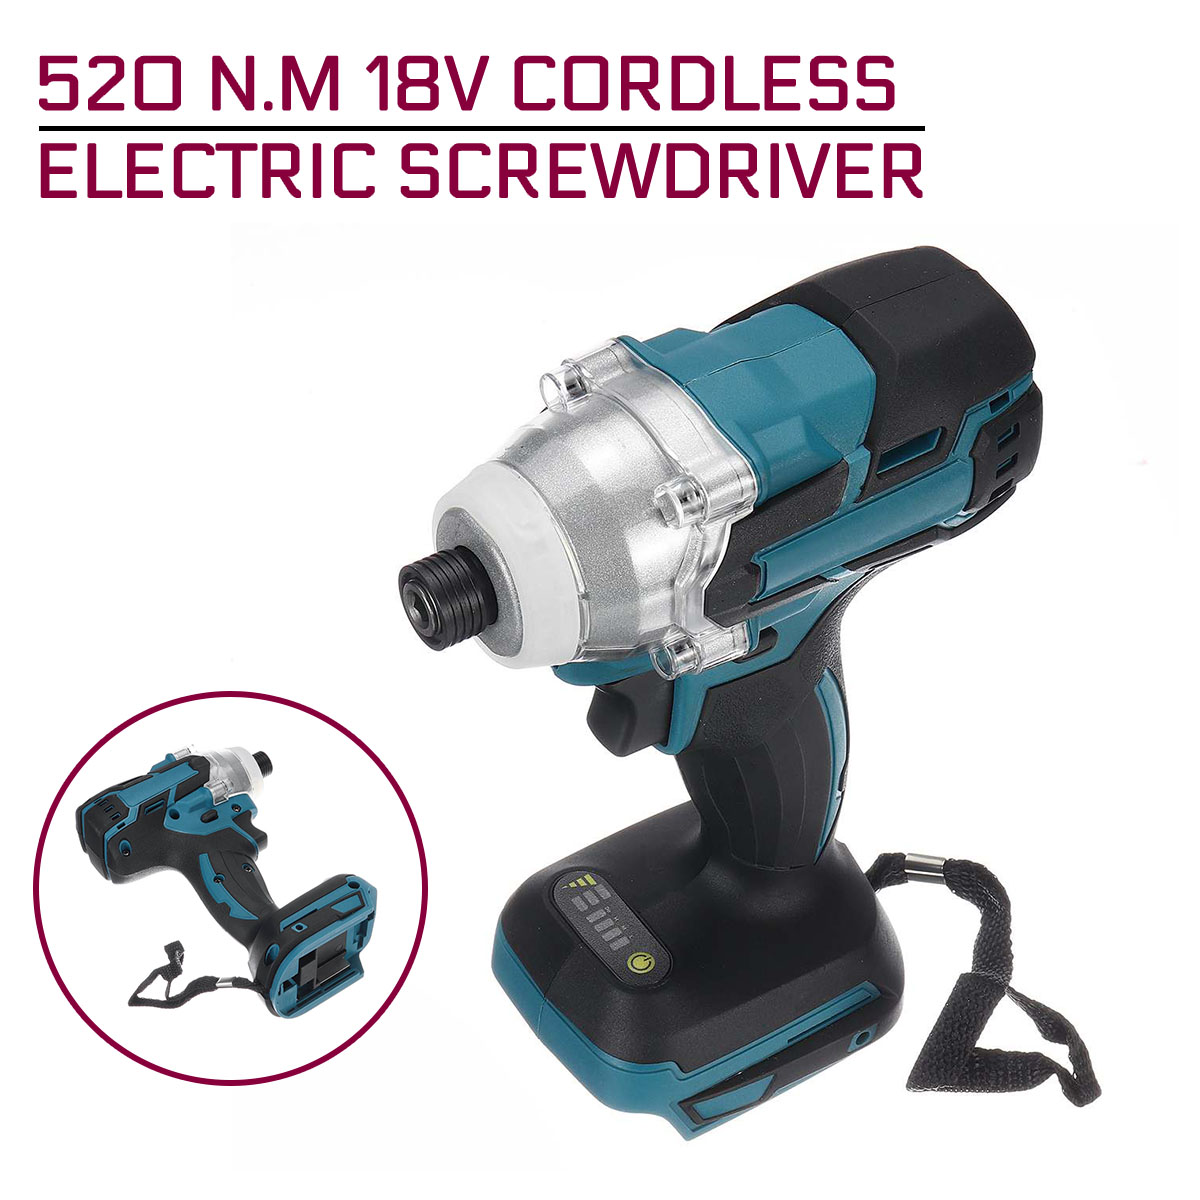 18V 520 N.m Cordless Electric Screwdriver Speed Impact Wrench Rechargable Brushless Drill Driver+ LED Light For Makita Battery